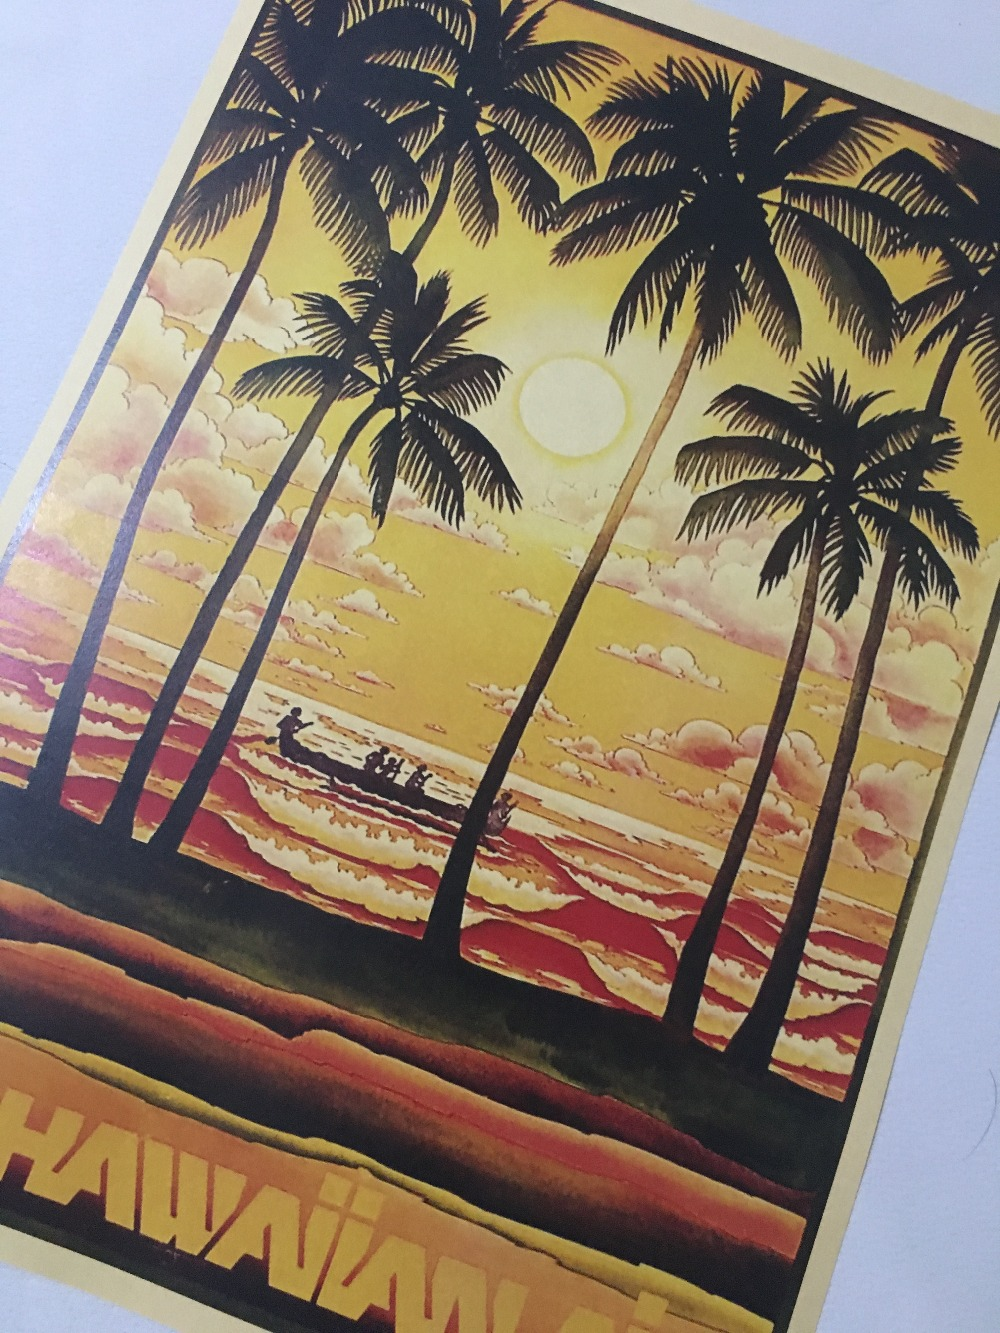 Aliexpress.com : Buy Pop Art Fly Hawaii Air Travel Poster Vintage ...